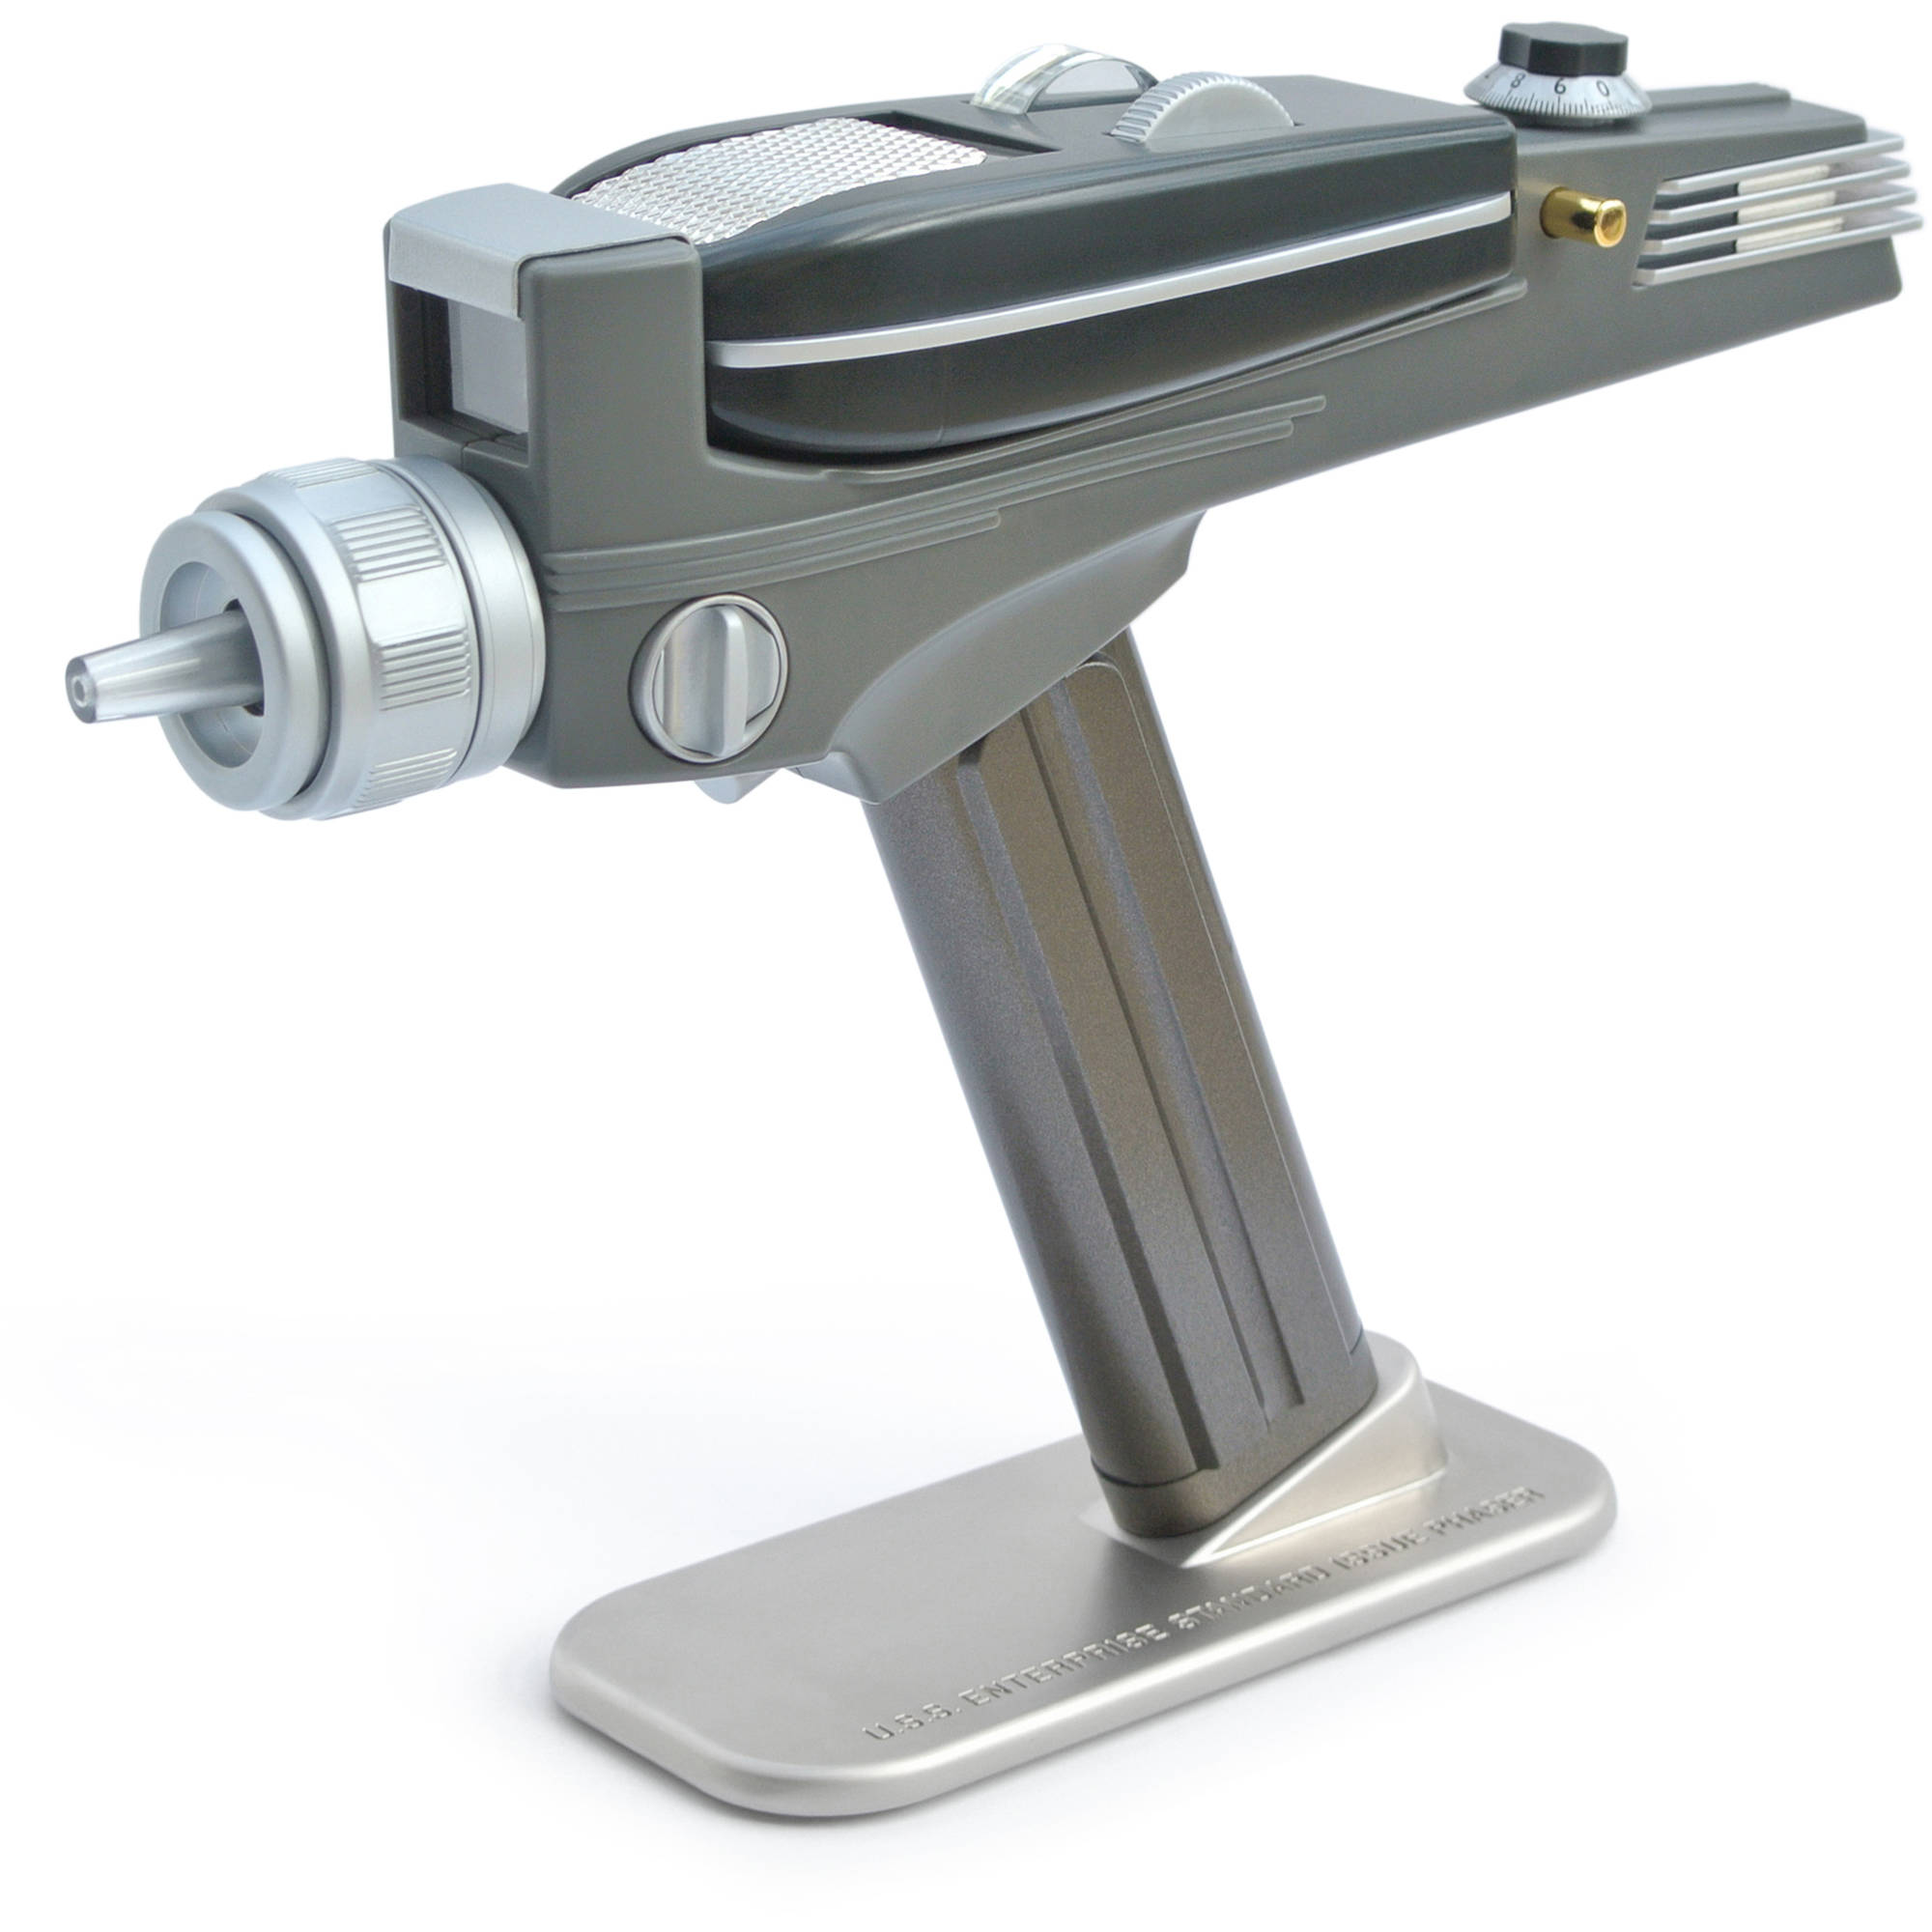 The Wand Company Original Series Star Trek Phaser Remote by Dardevle